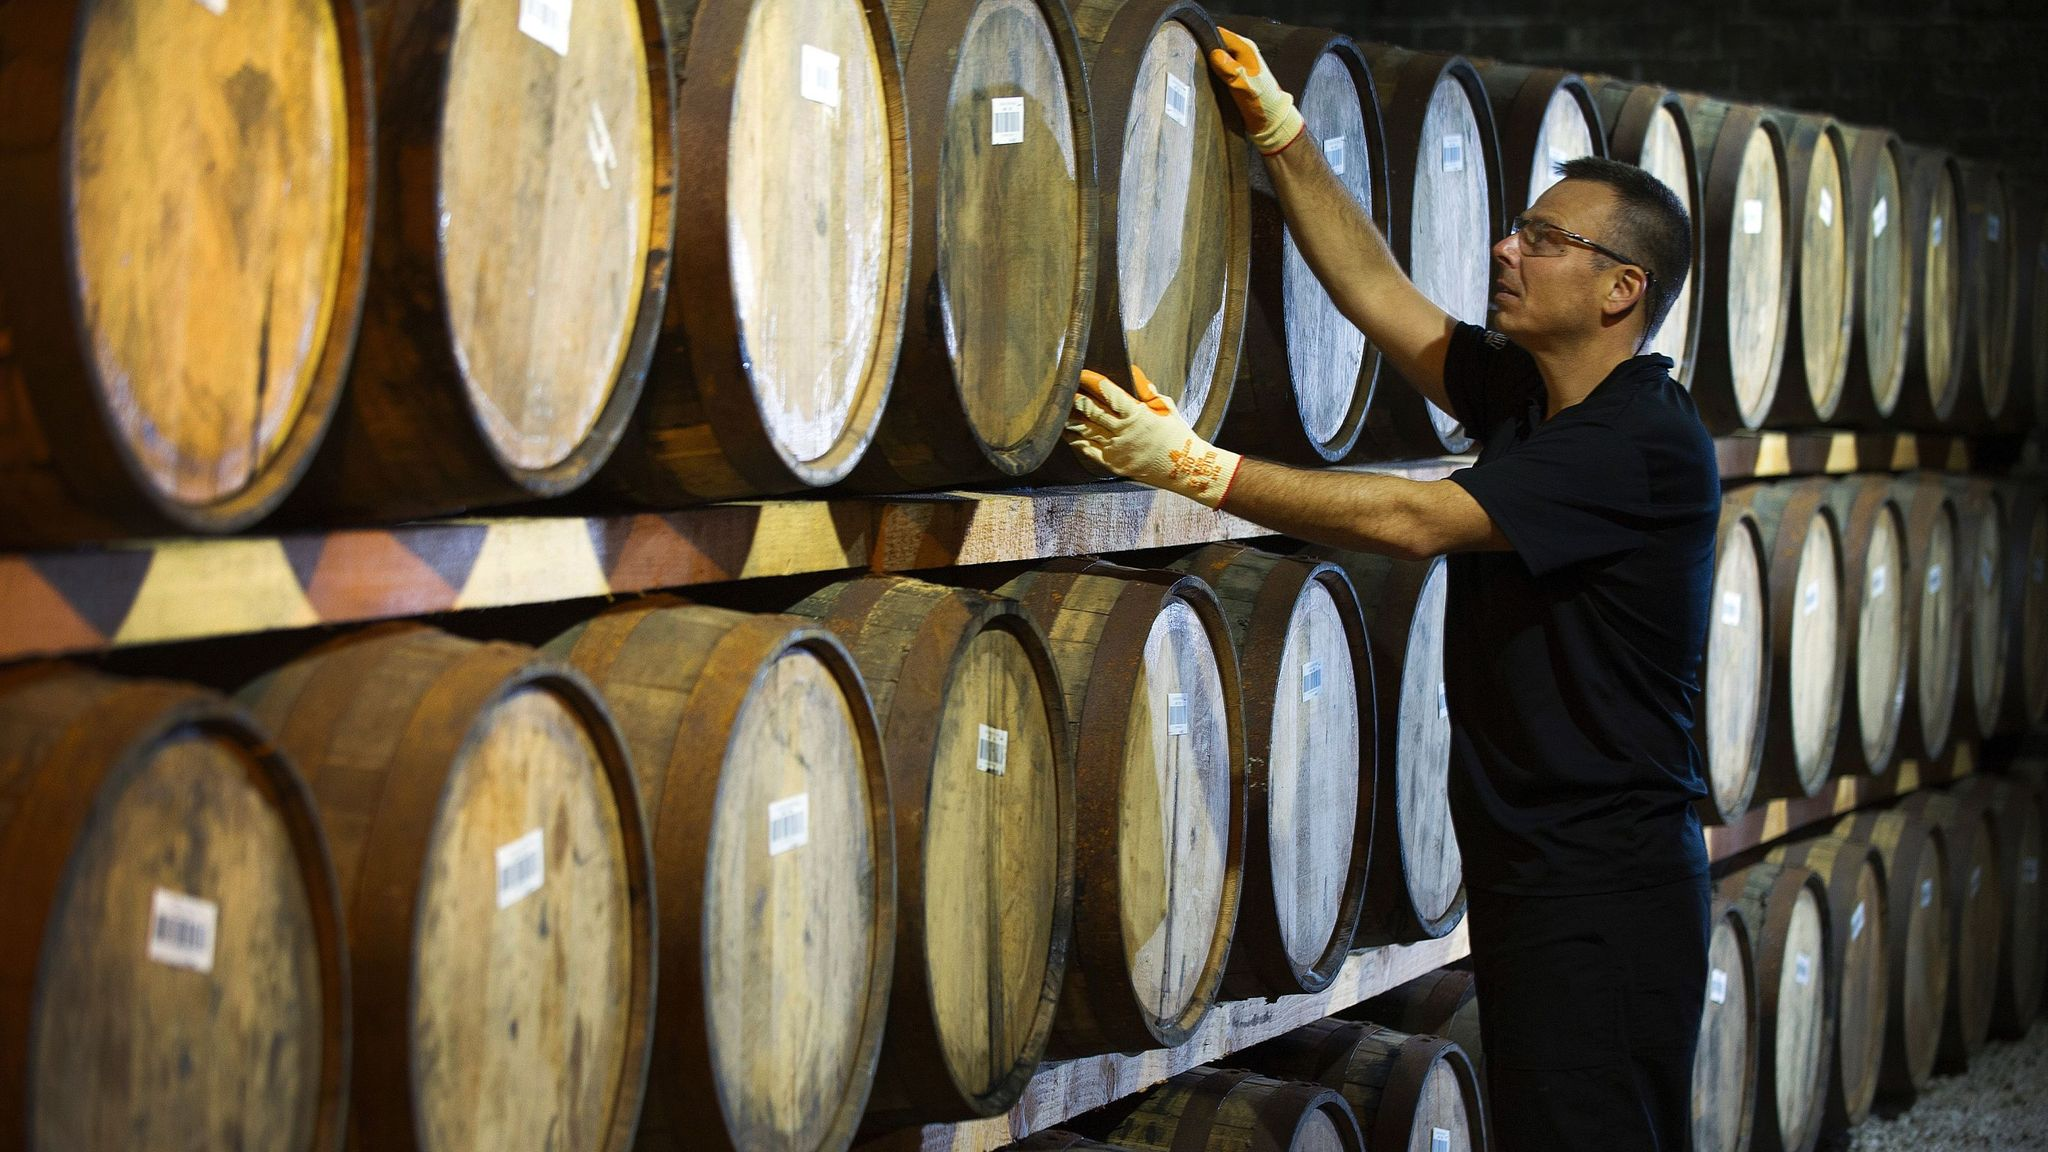 Whisky: Science crucial in fight against counterfeiters